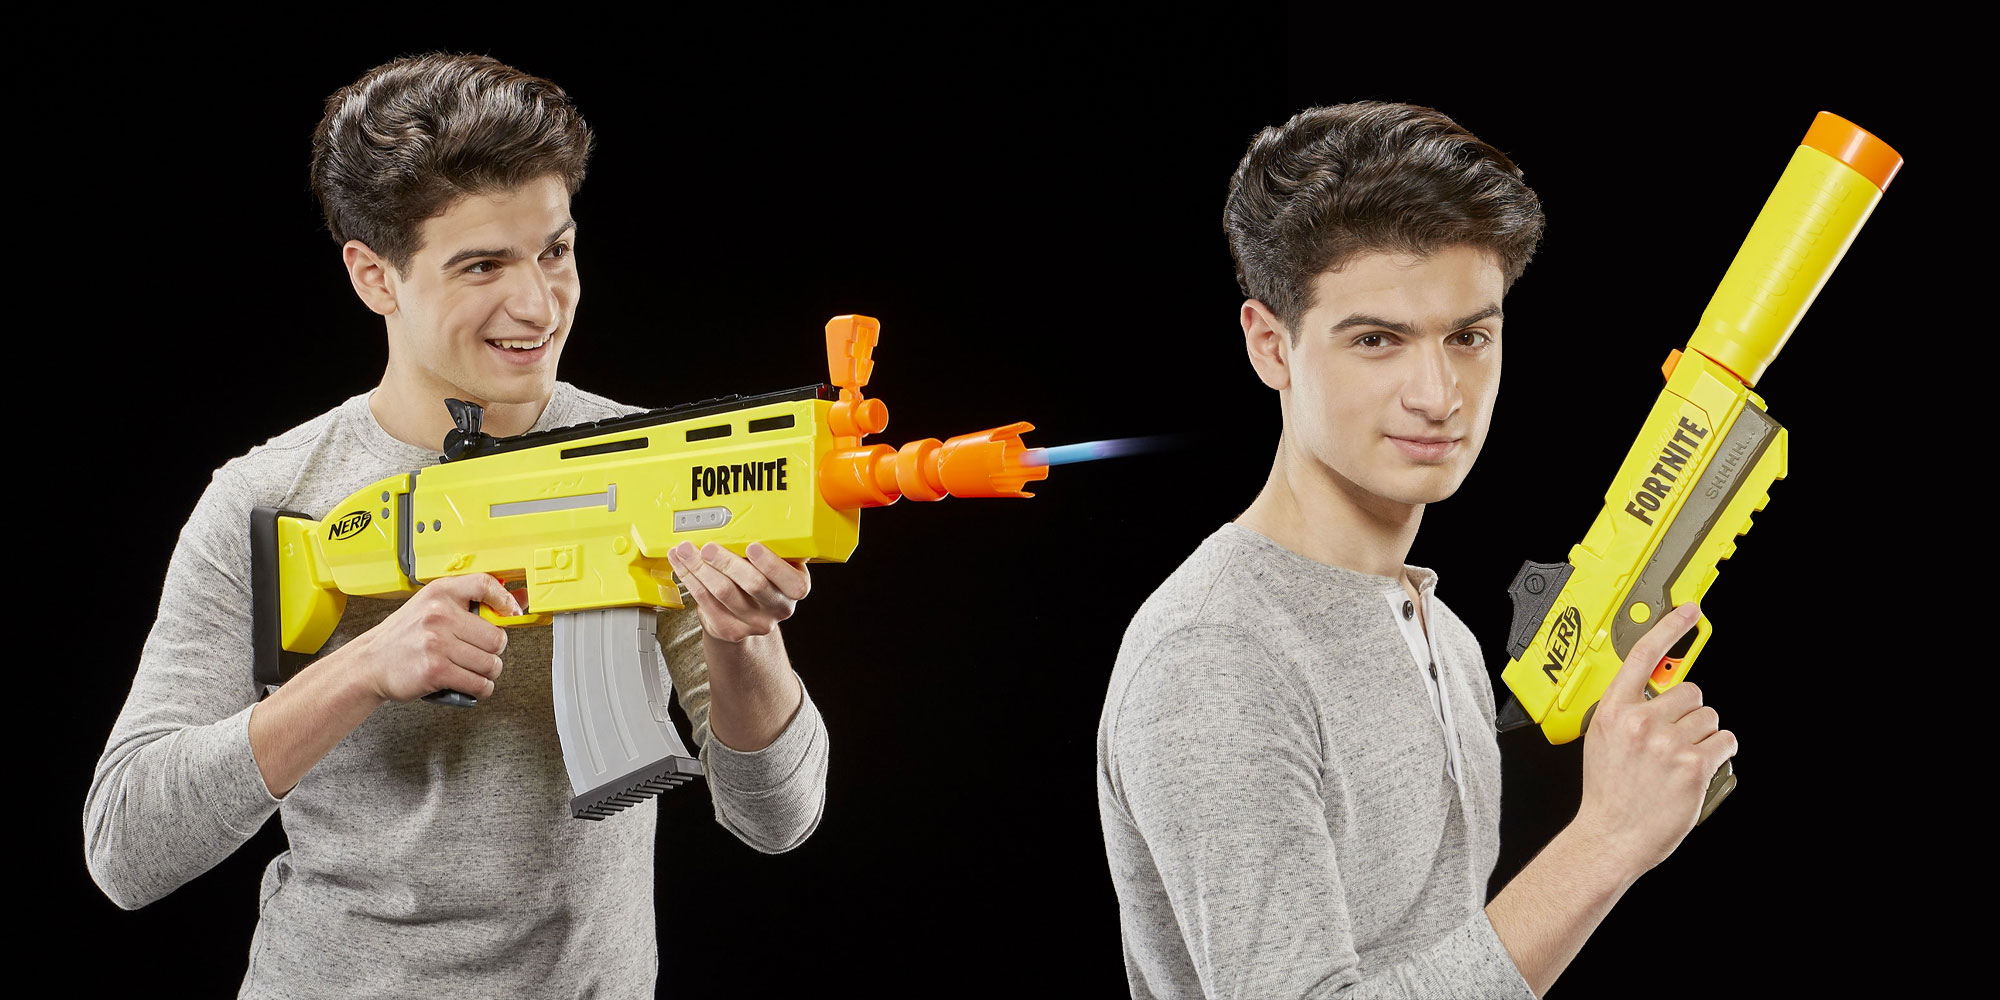 The Fortnite x NERF crossover is here to bring your favorite game to life